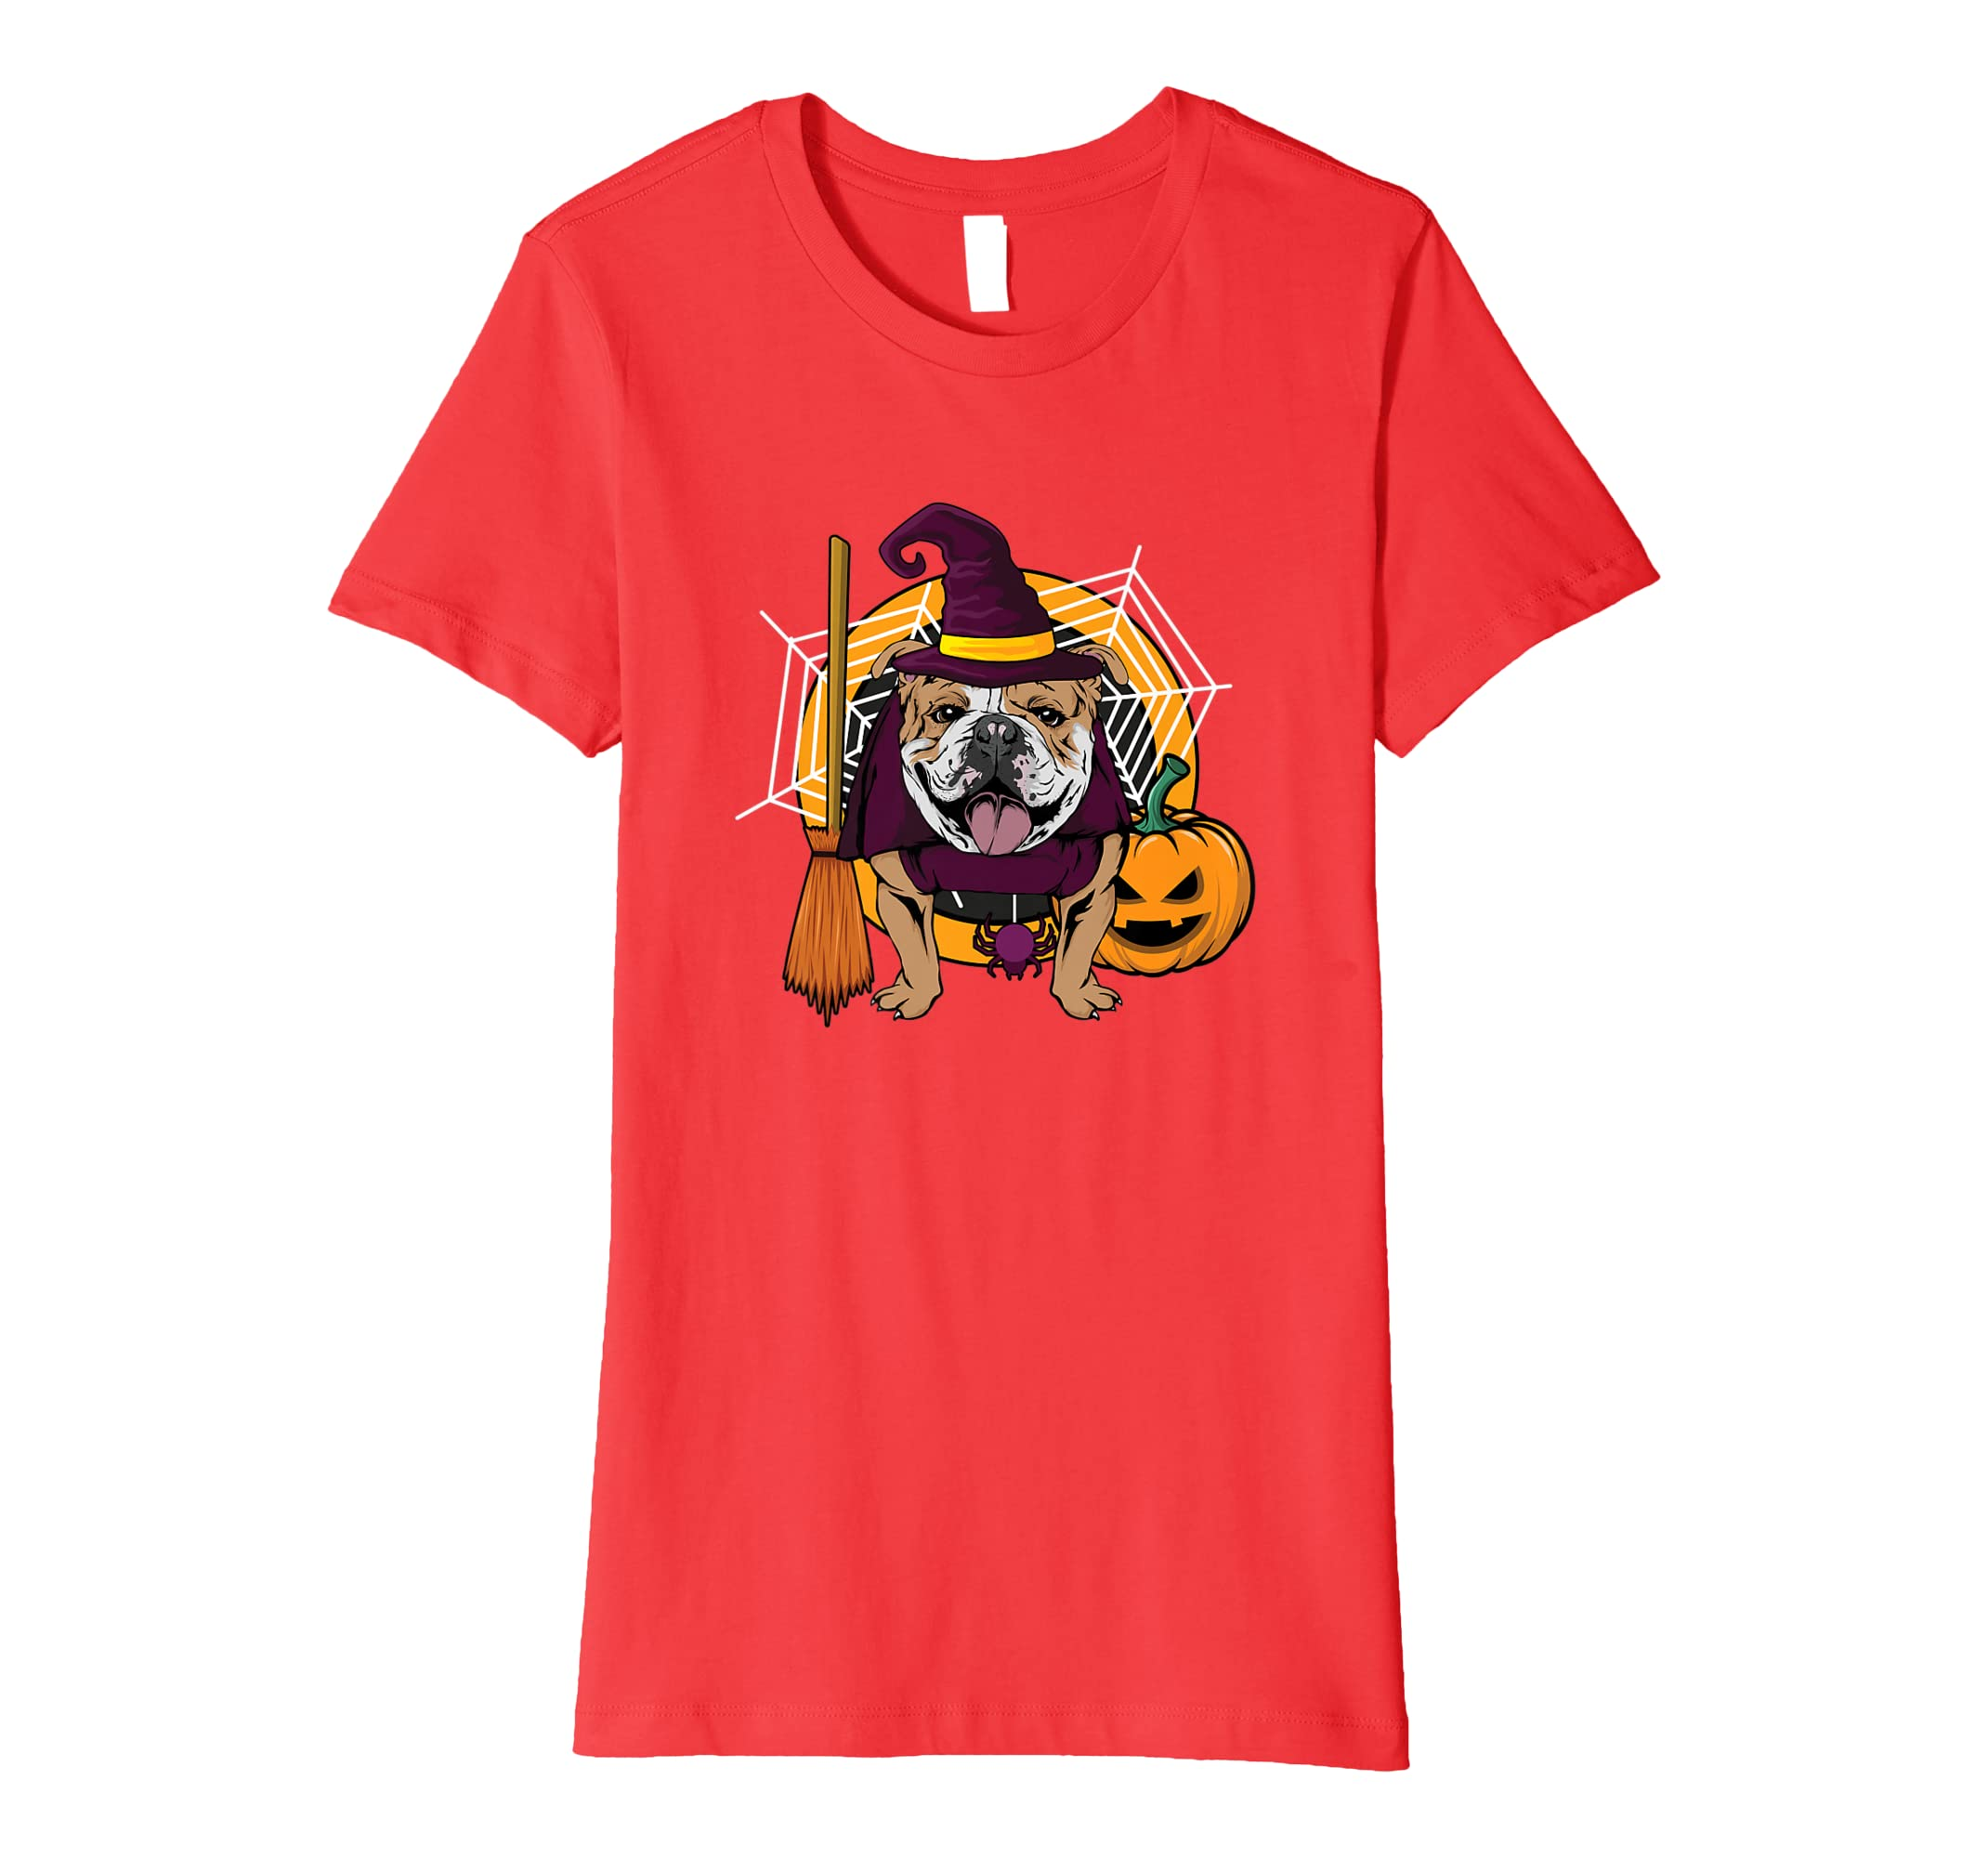 Amazon.com: Witch Bulldog Dog T Shirt Costume For Spooky Halloween: Clothing